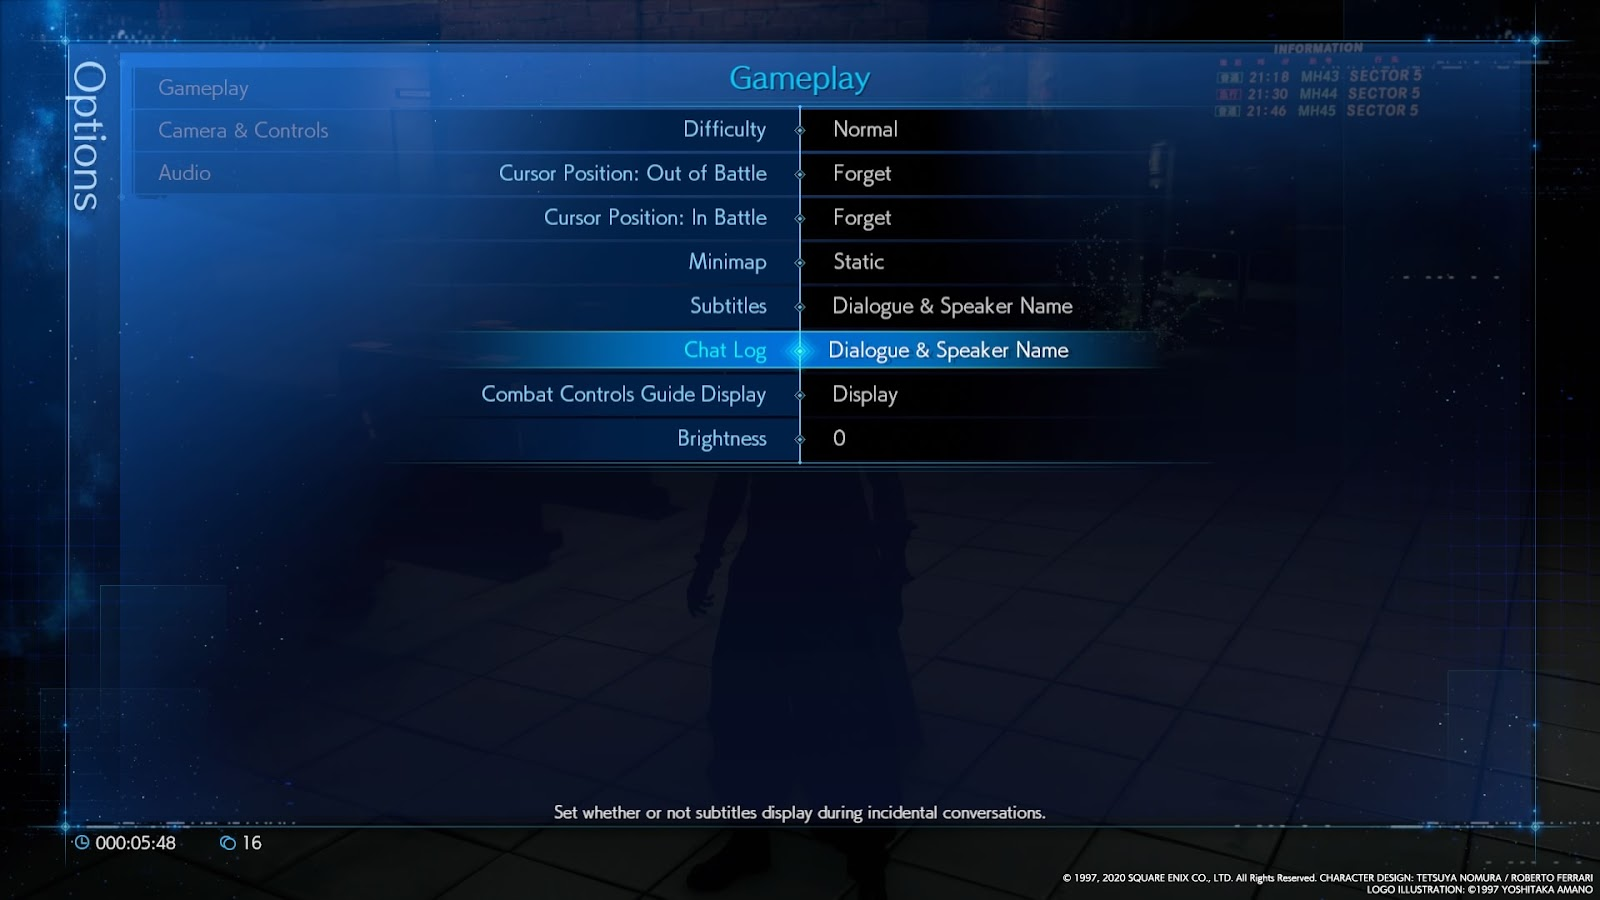 Gameplay options menu.